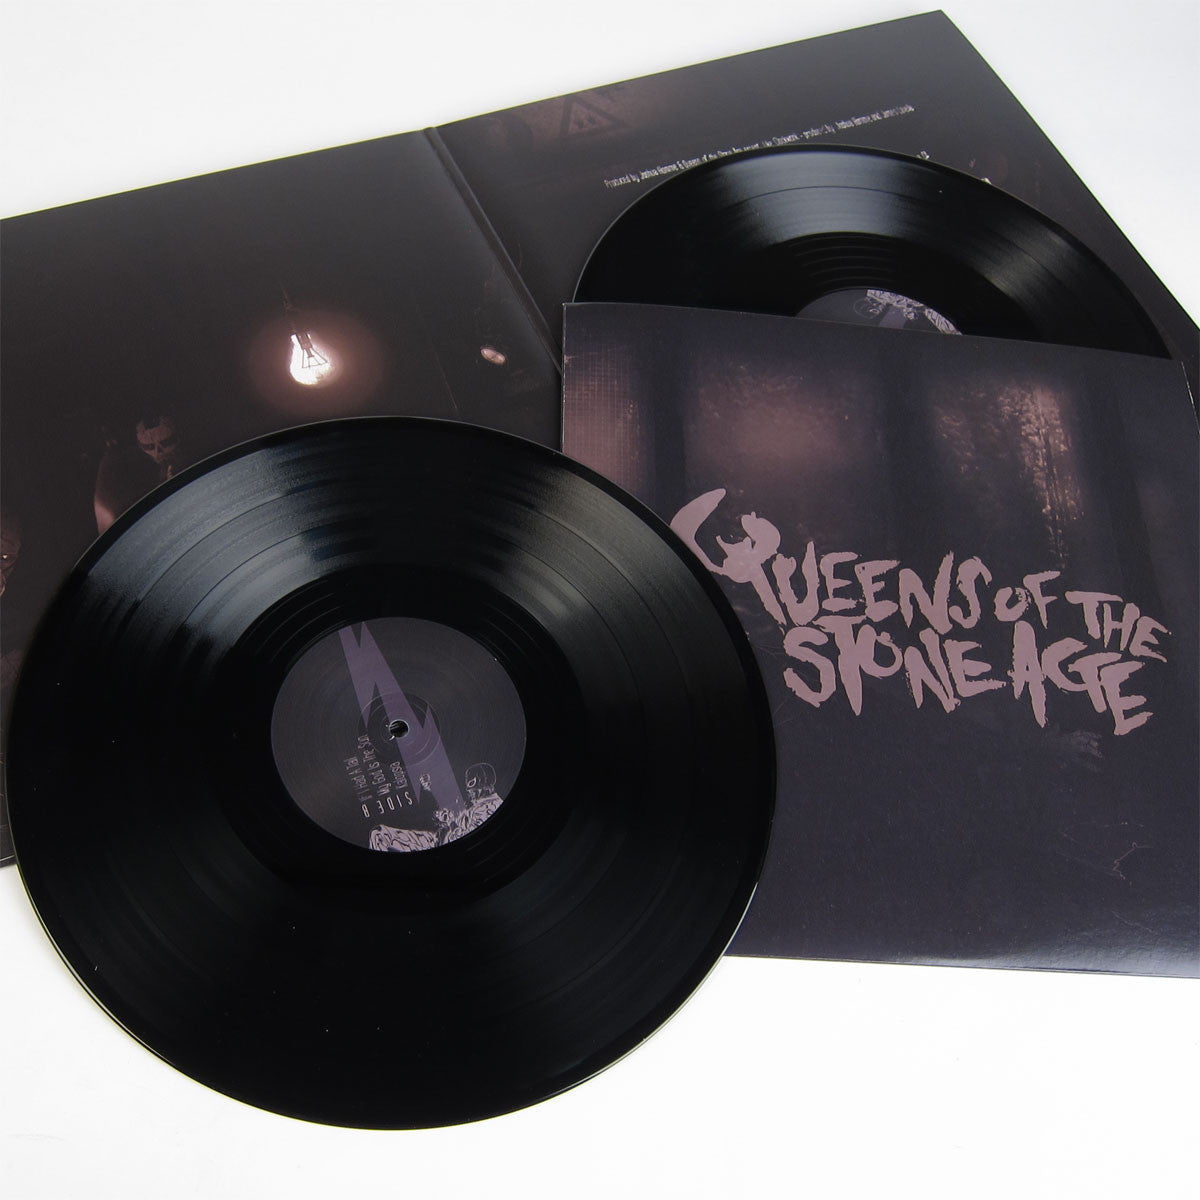 Queens of the Stone Age: Like Clockwork Black On Black On Black Friday Edition (Record Store Day) 2LP gatefold